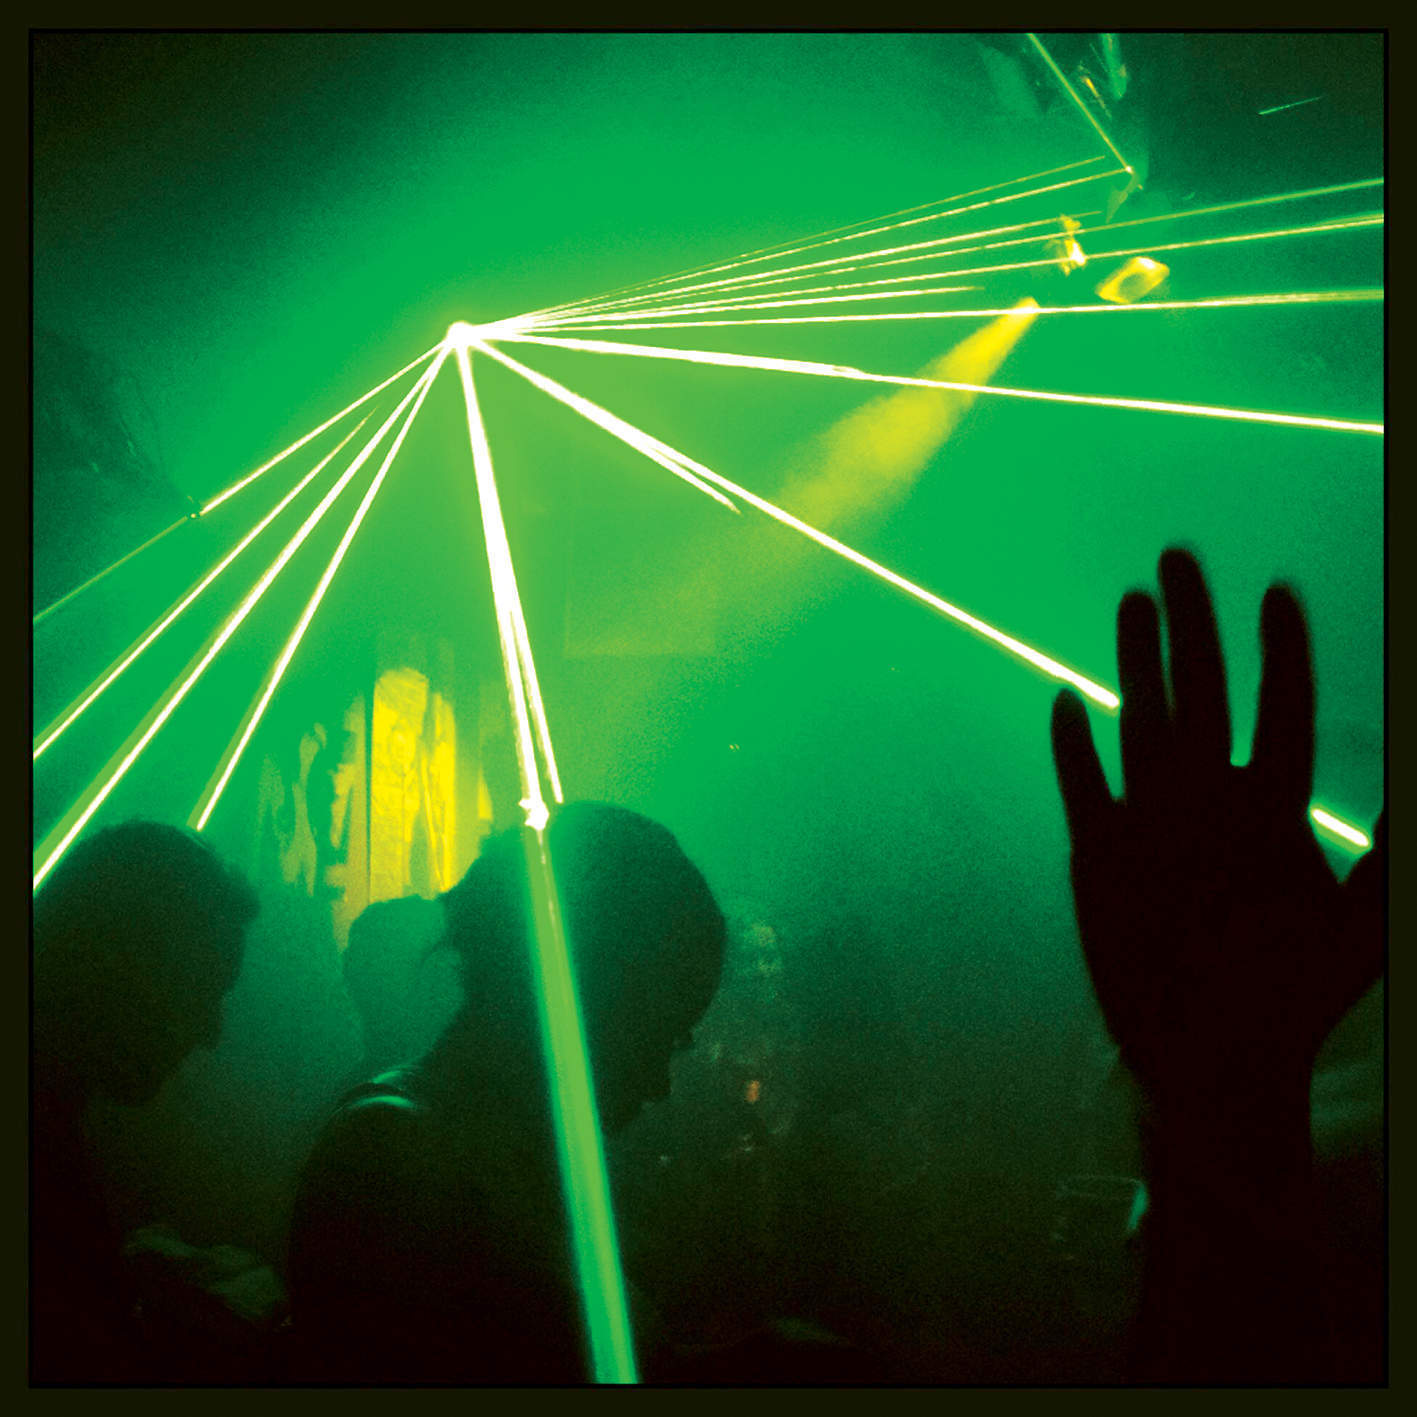 Bad vibes: why Britain's nightclubs are closing